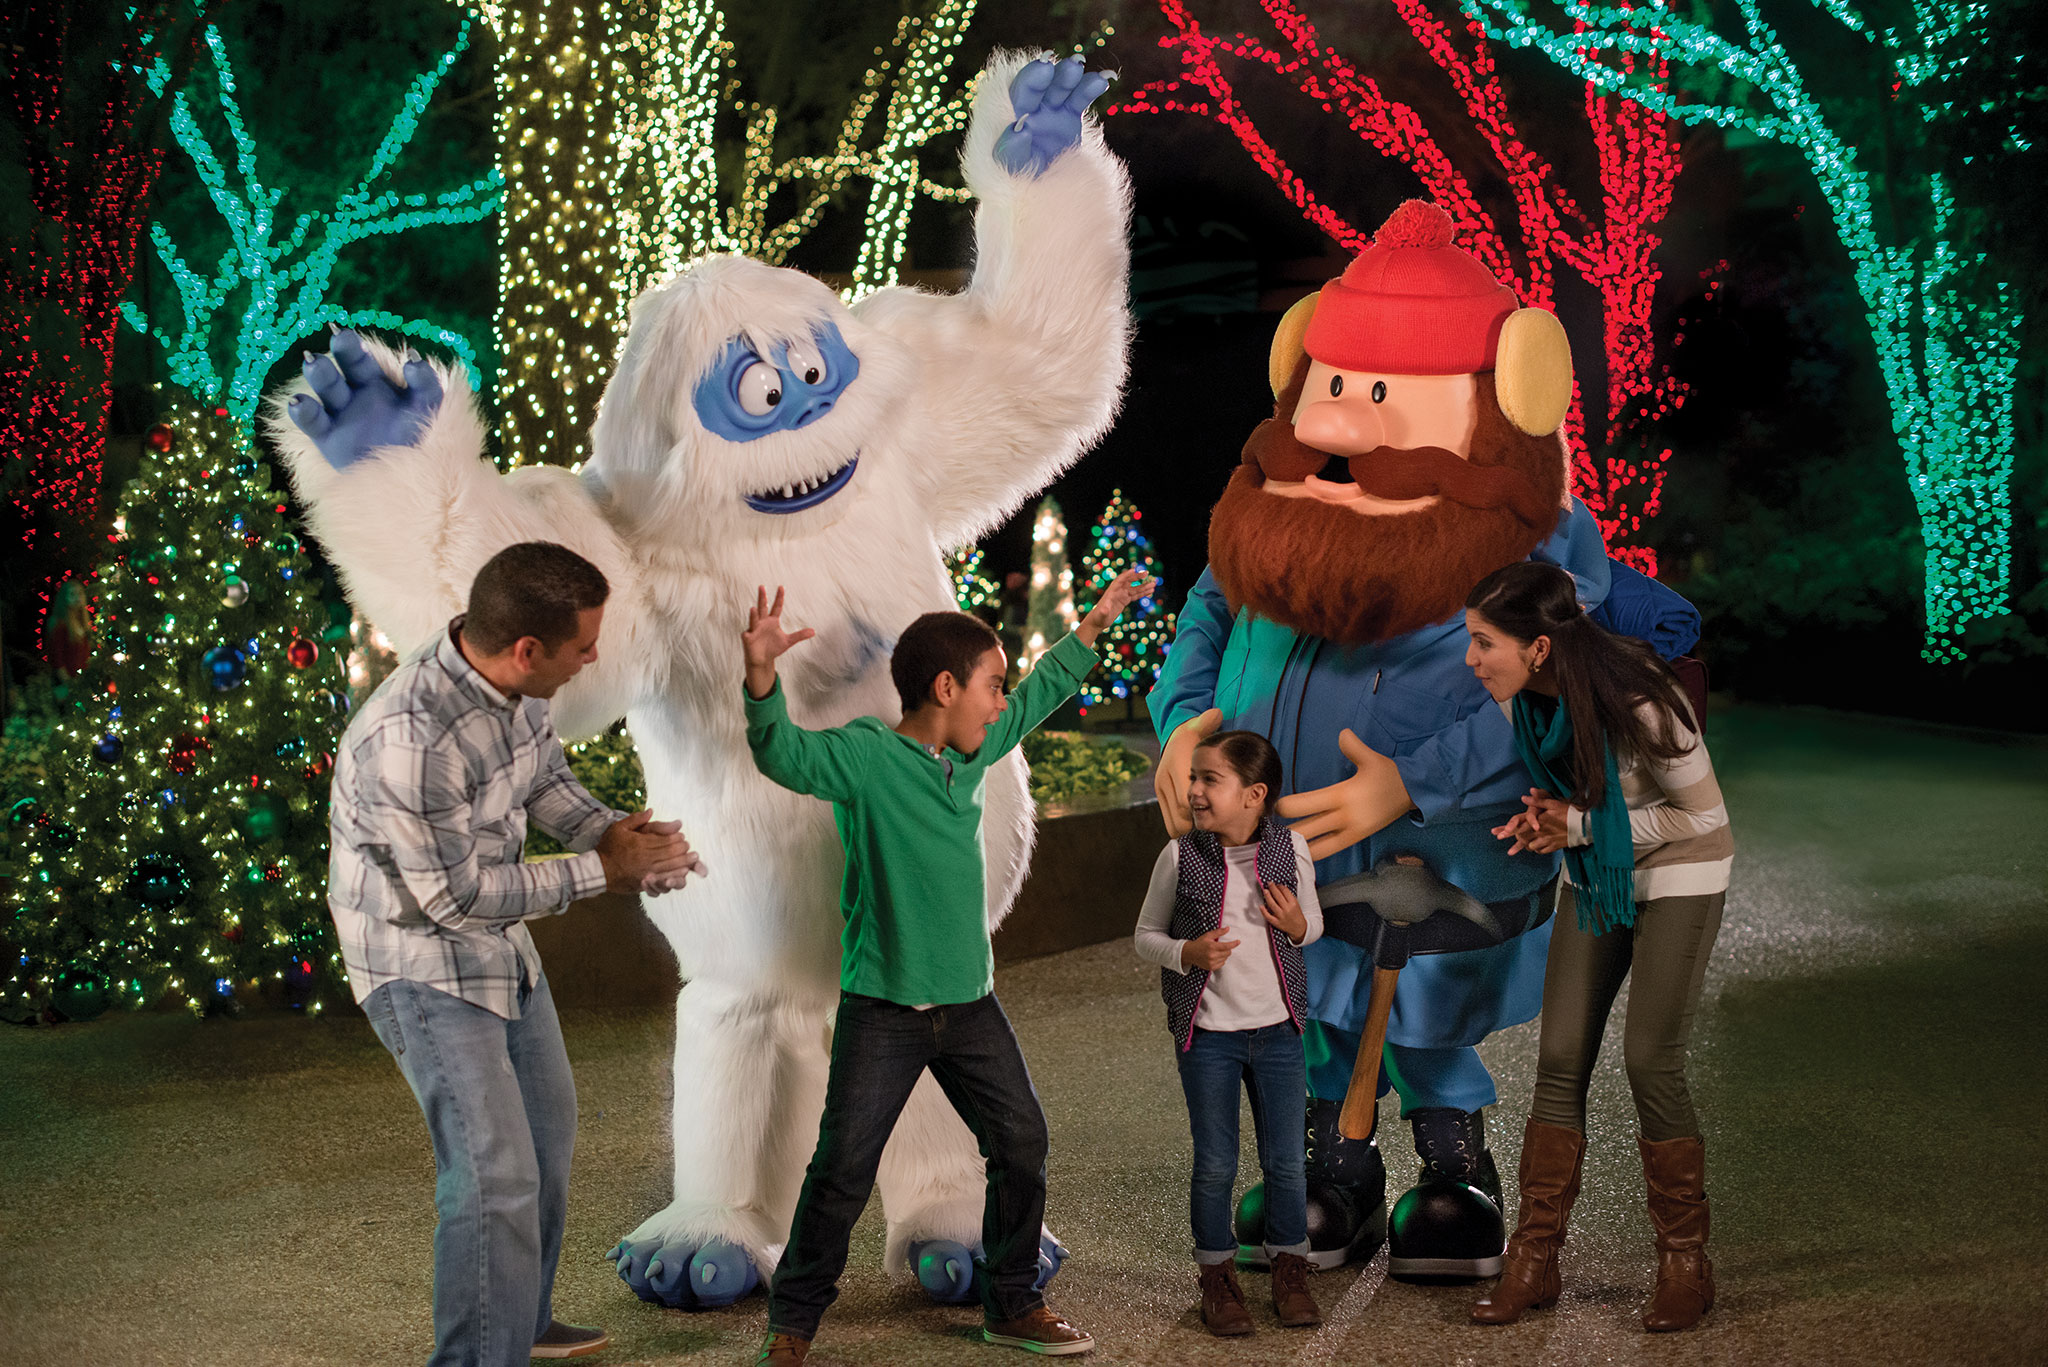 Christmas town returns to busch gardens in 2016 featuring rudolph the red nosed reindeer for Busch gardens christmas town 2016